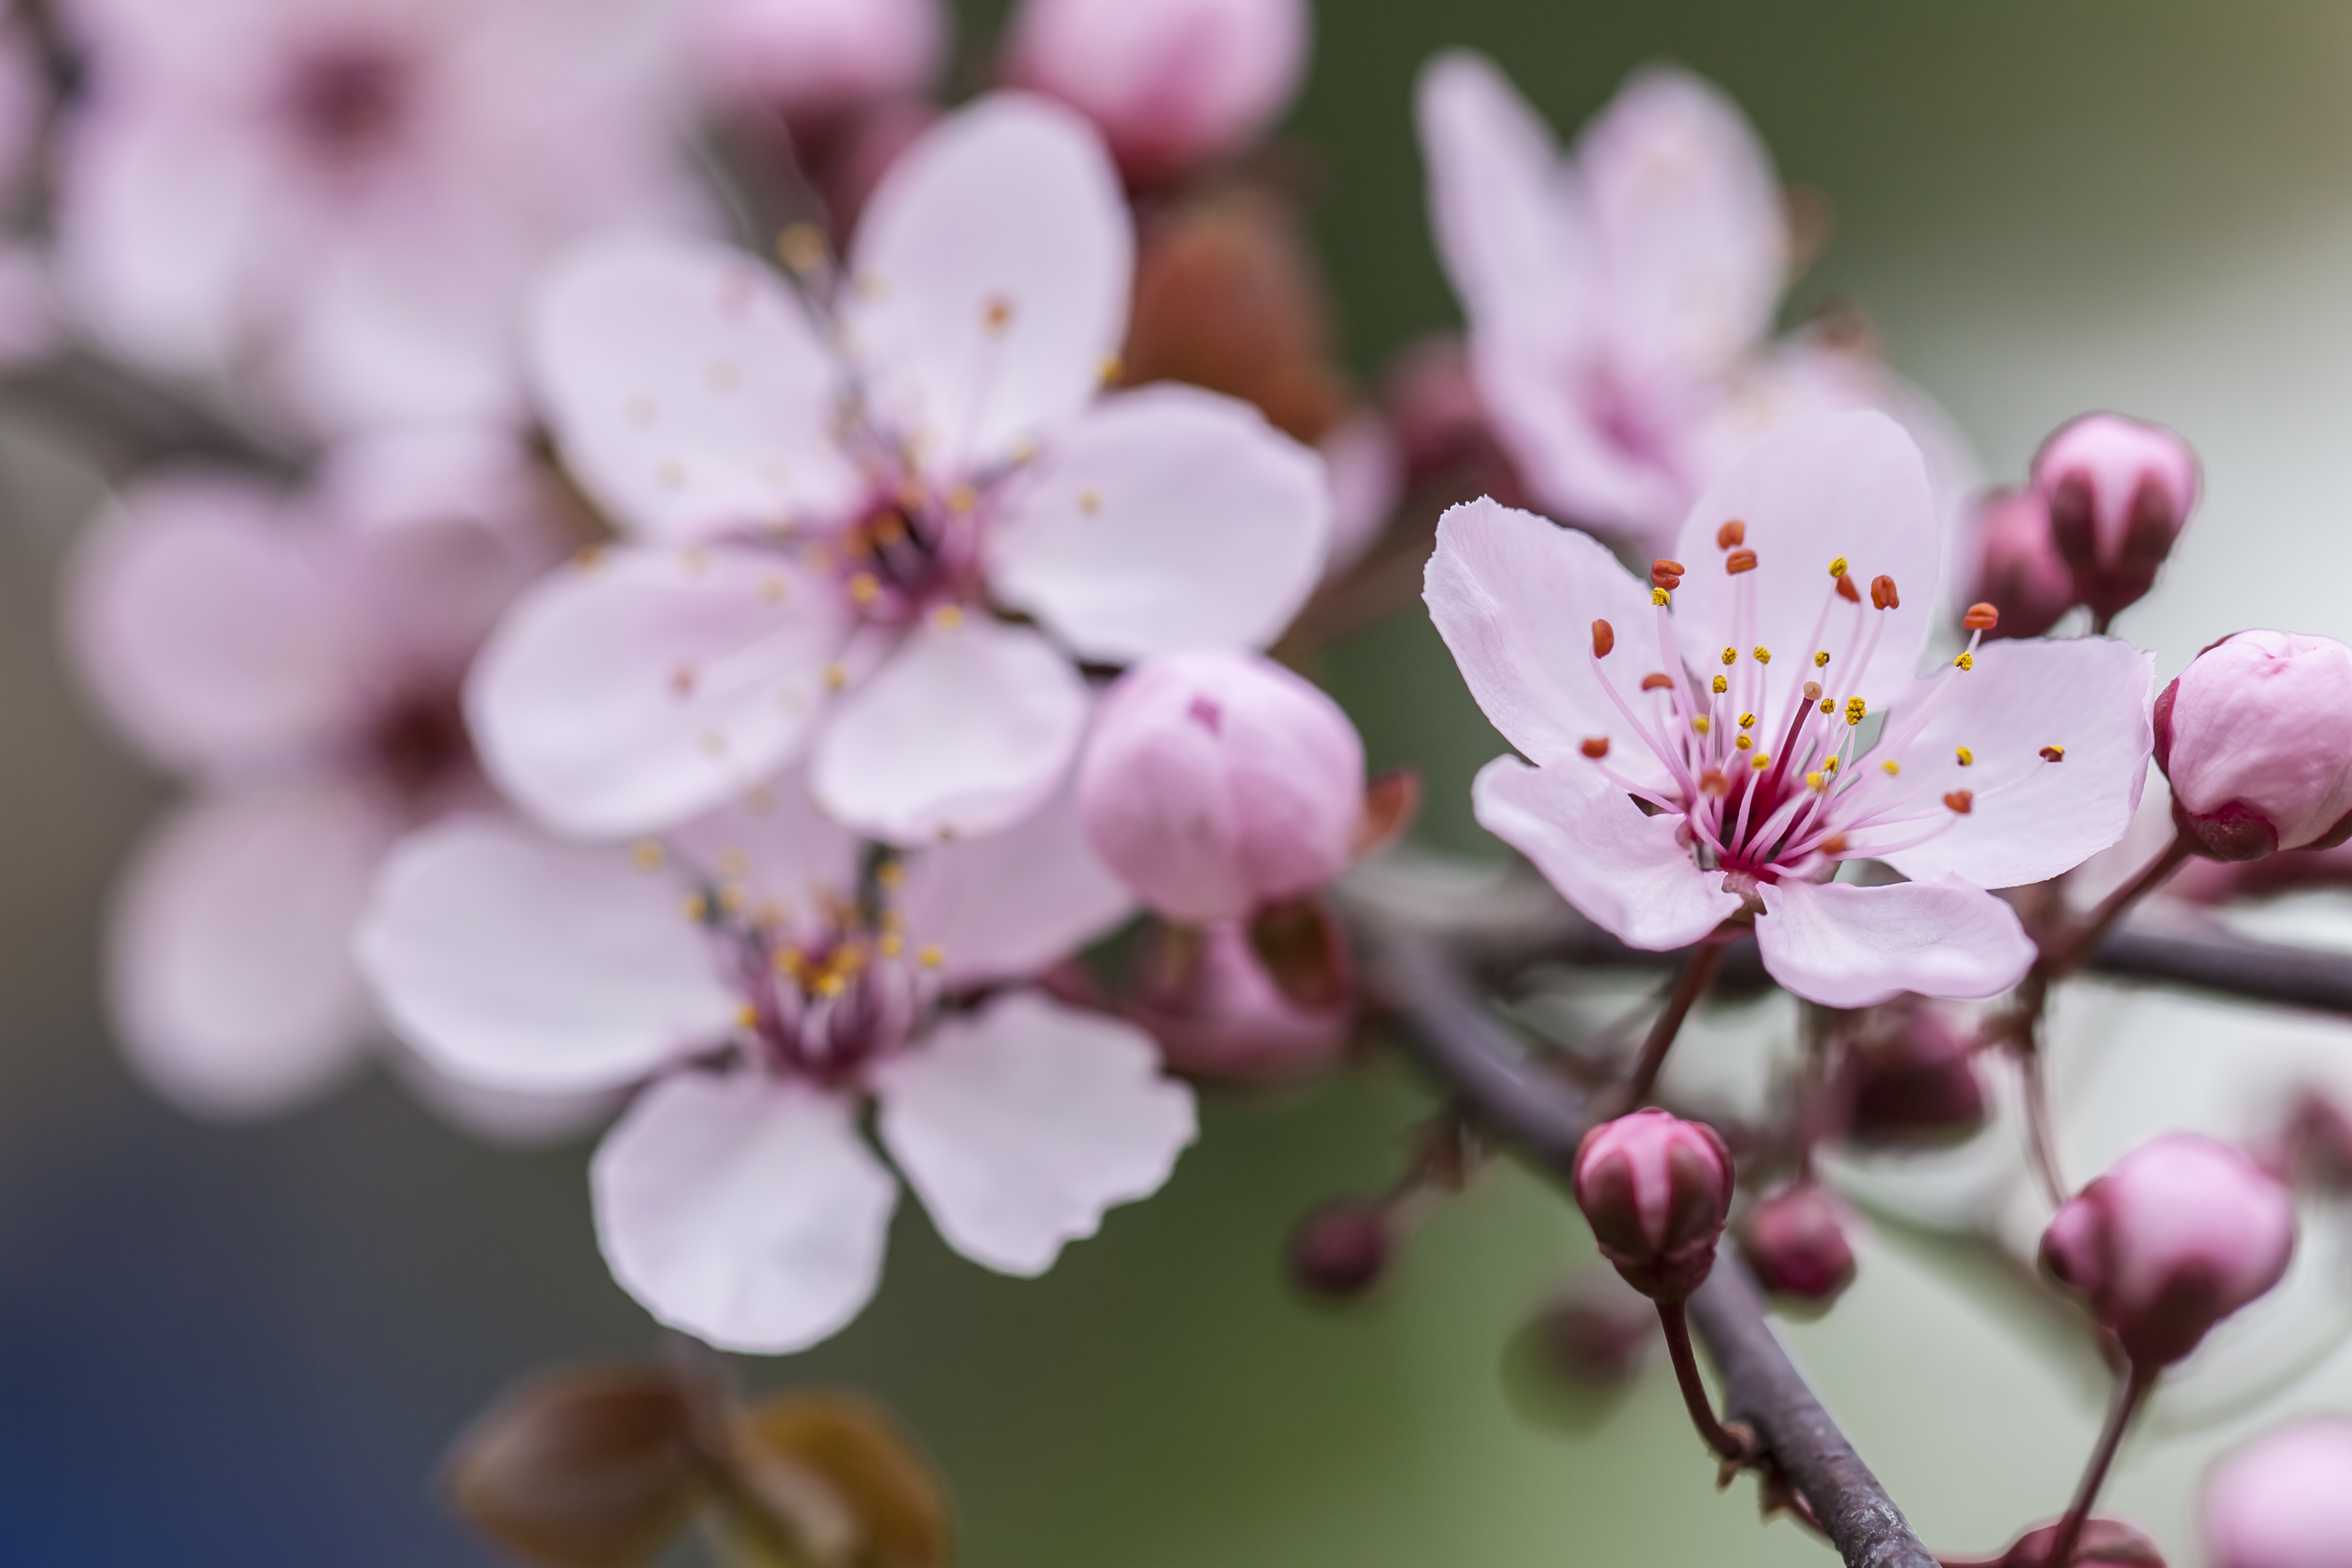 How To Tell If Your Cherry Tree Is Dead